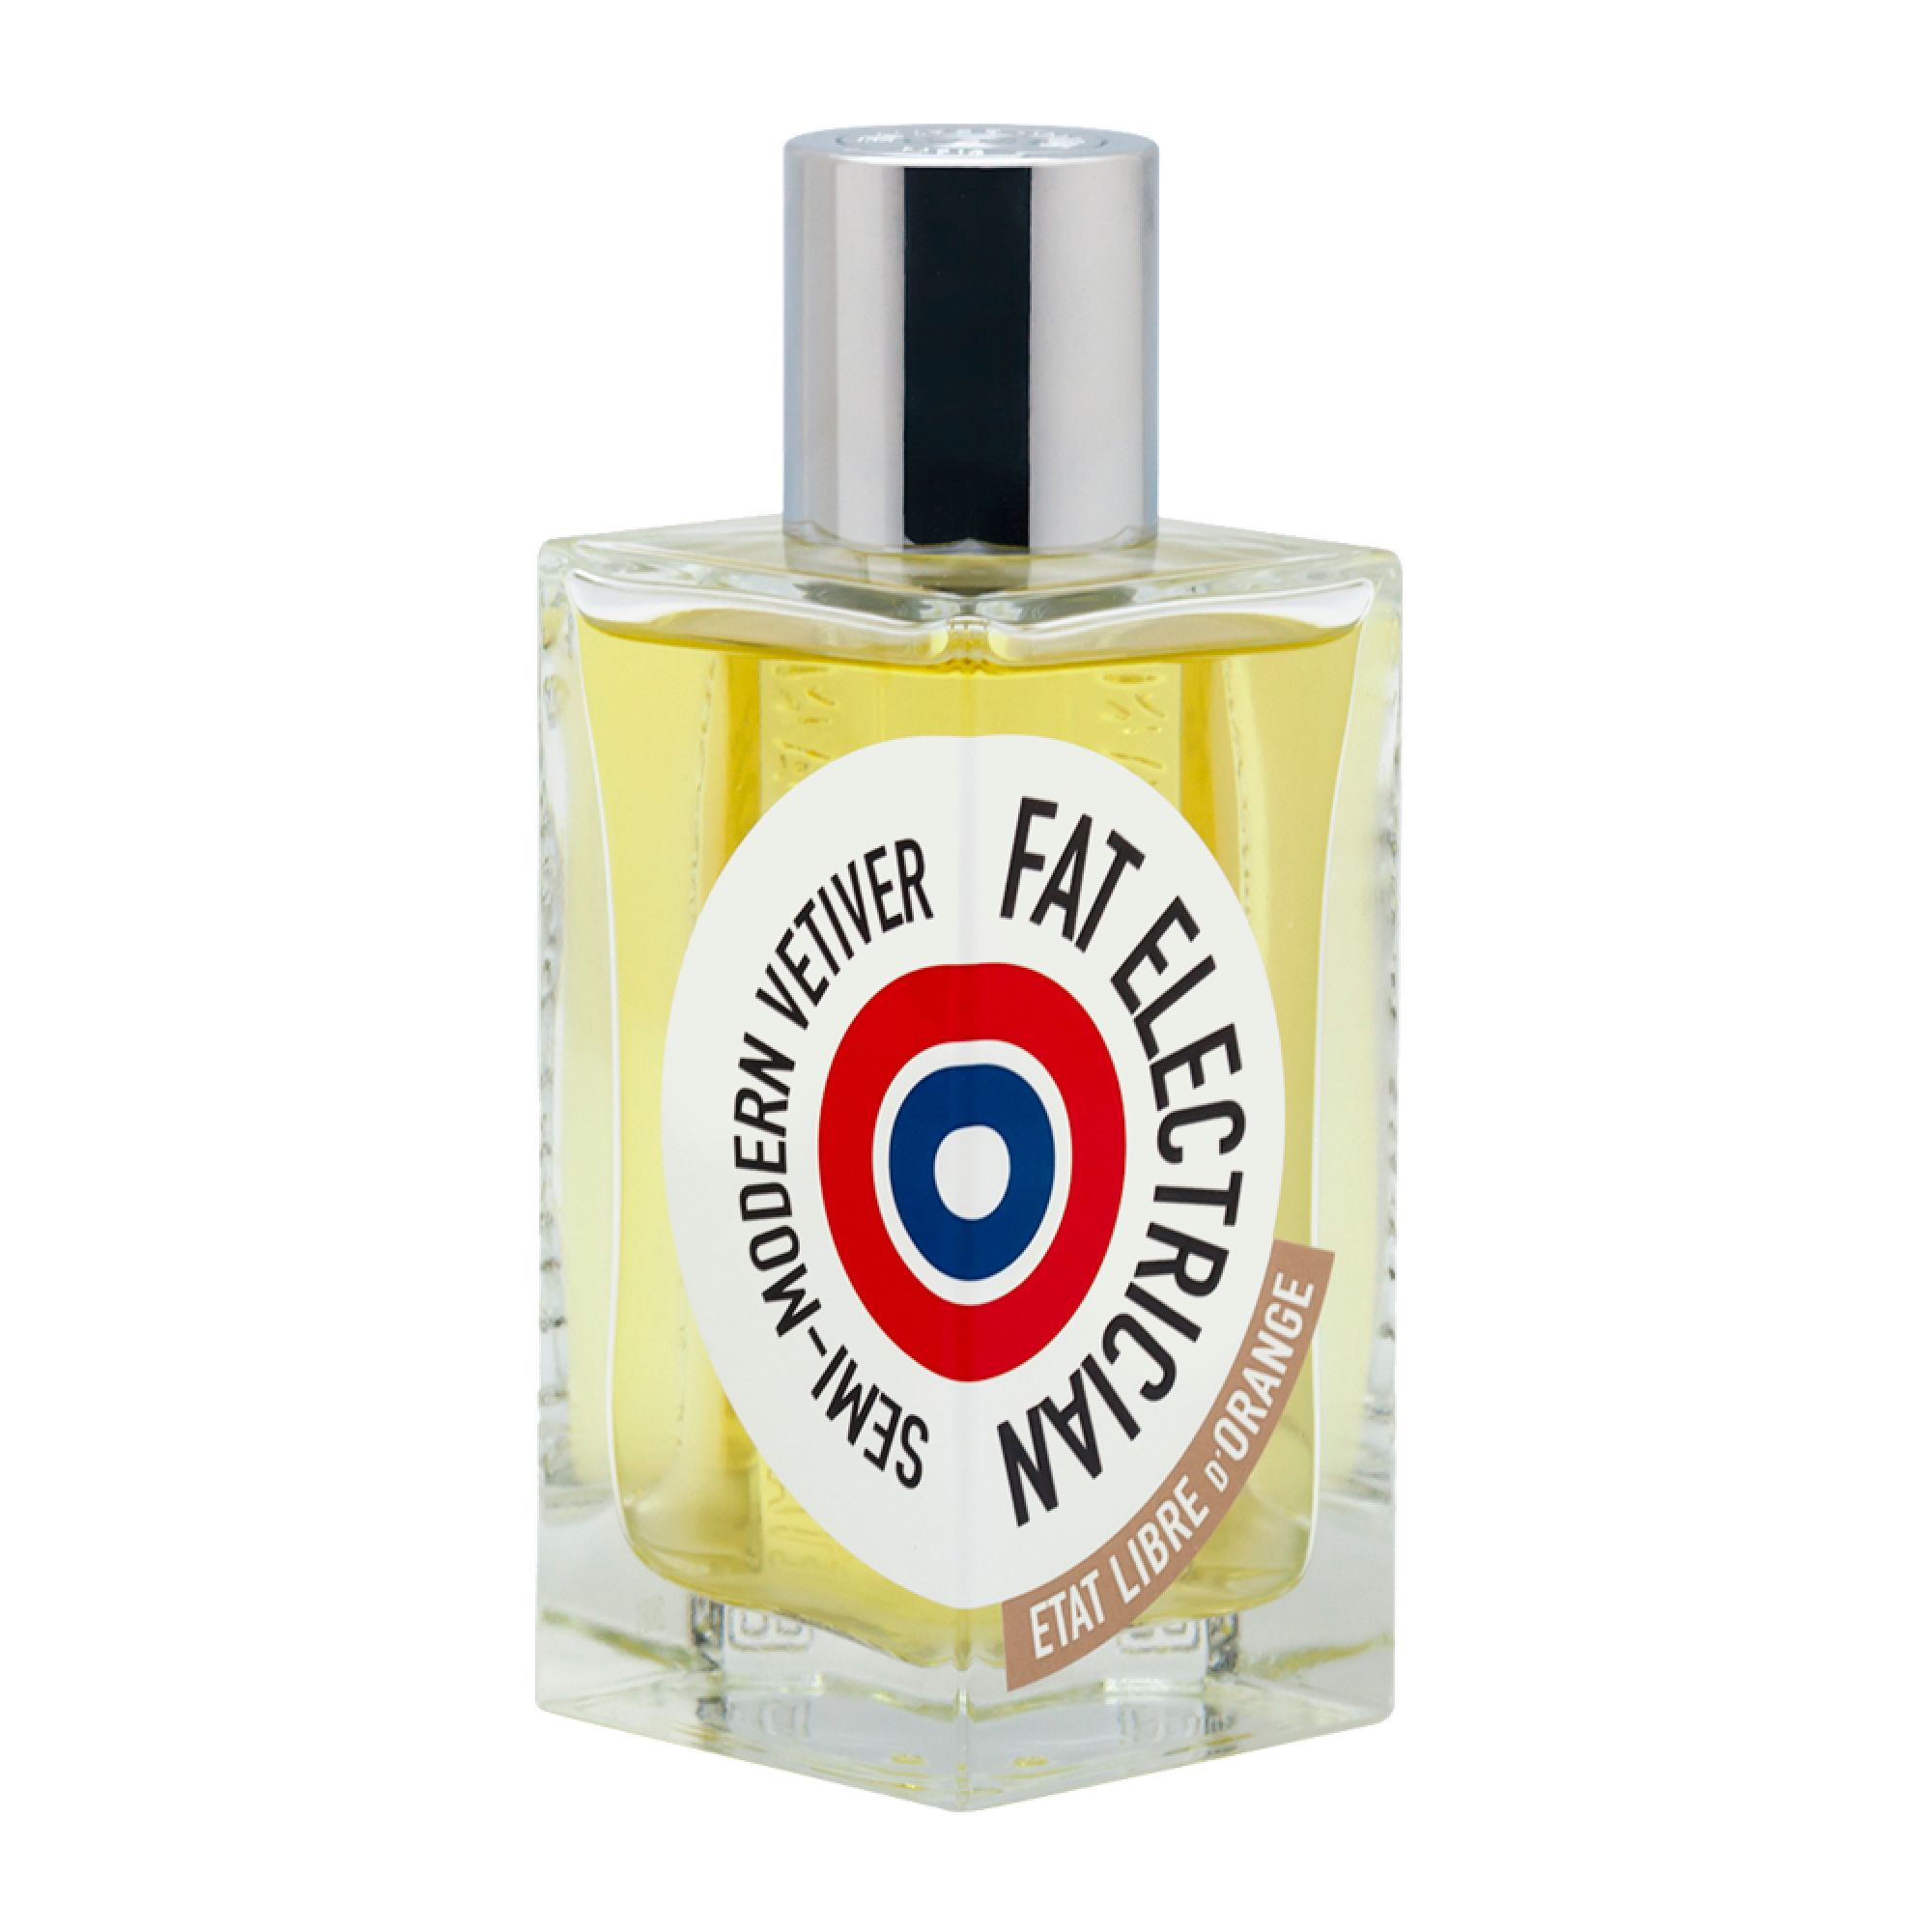 Etat Libre d'Orange Etat Libre d'Orange Fat Electrician Eau de Parfum 50ml